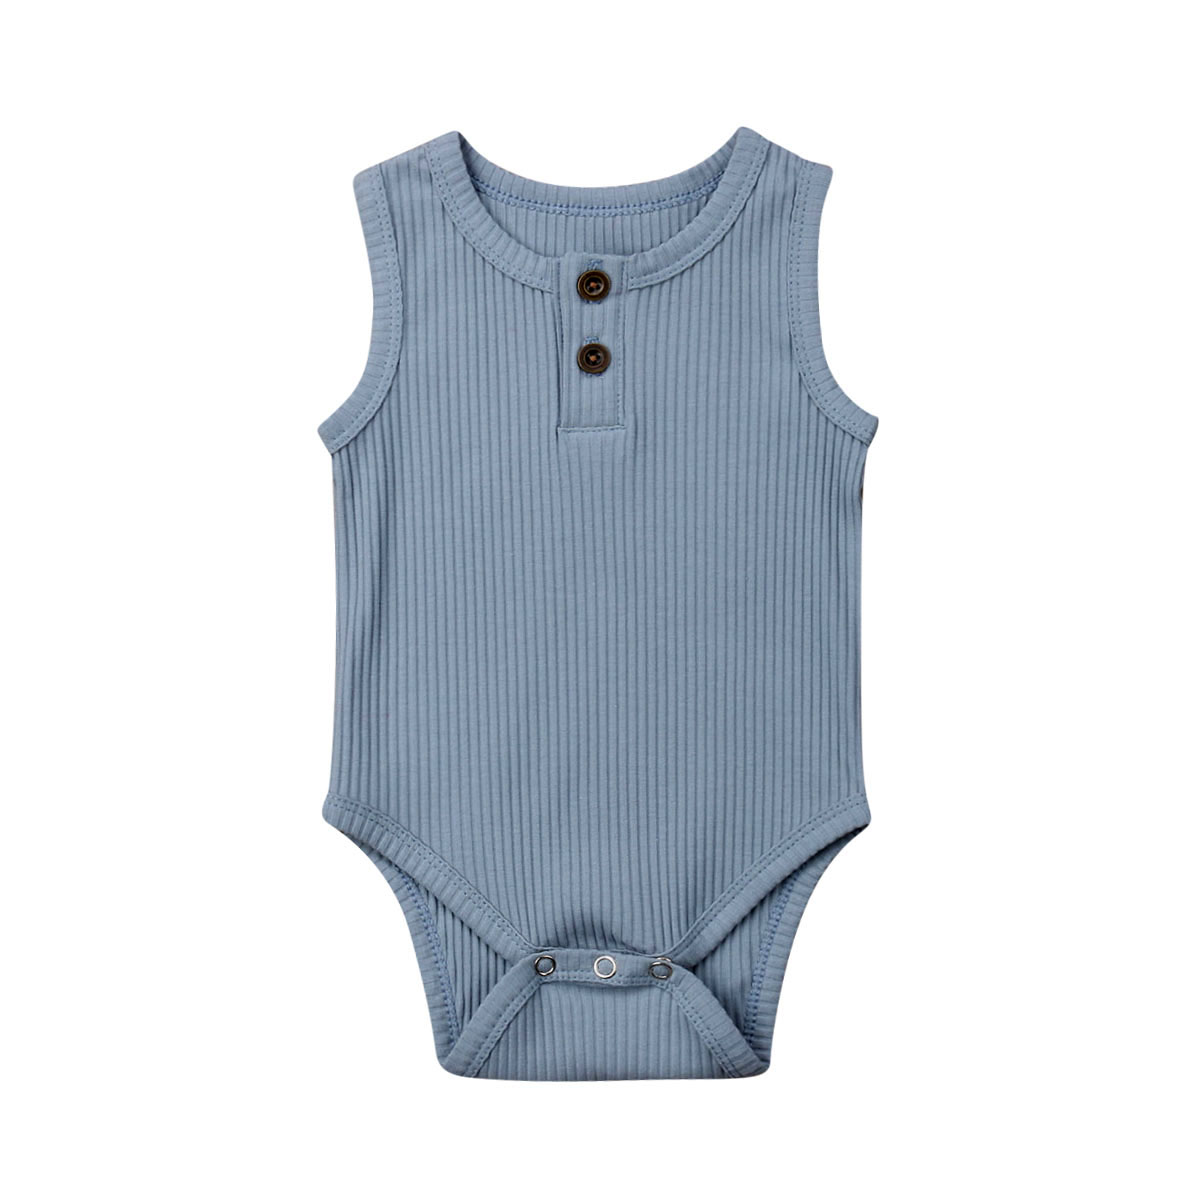 Cute Newborn Baby Boy Girl Cotton Romper Jumpsuit Solid Sleeveless Outfit Casual Clothes Cute Newborn Baby Boy Girl Cotton Romper Jumpsuit Solid Sleeveless Outfit Casual Clothes